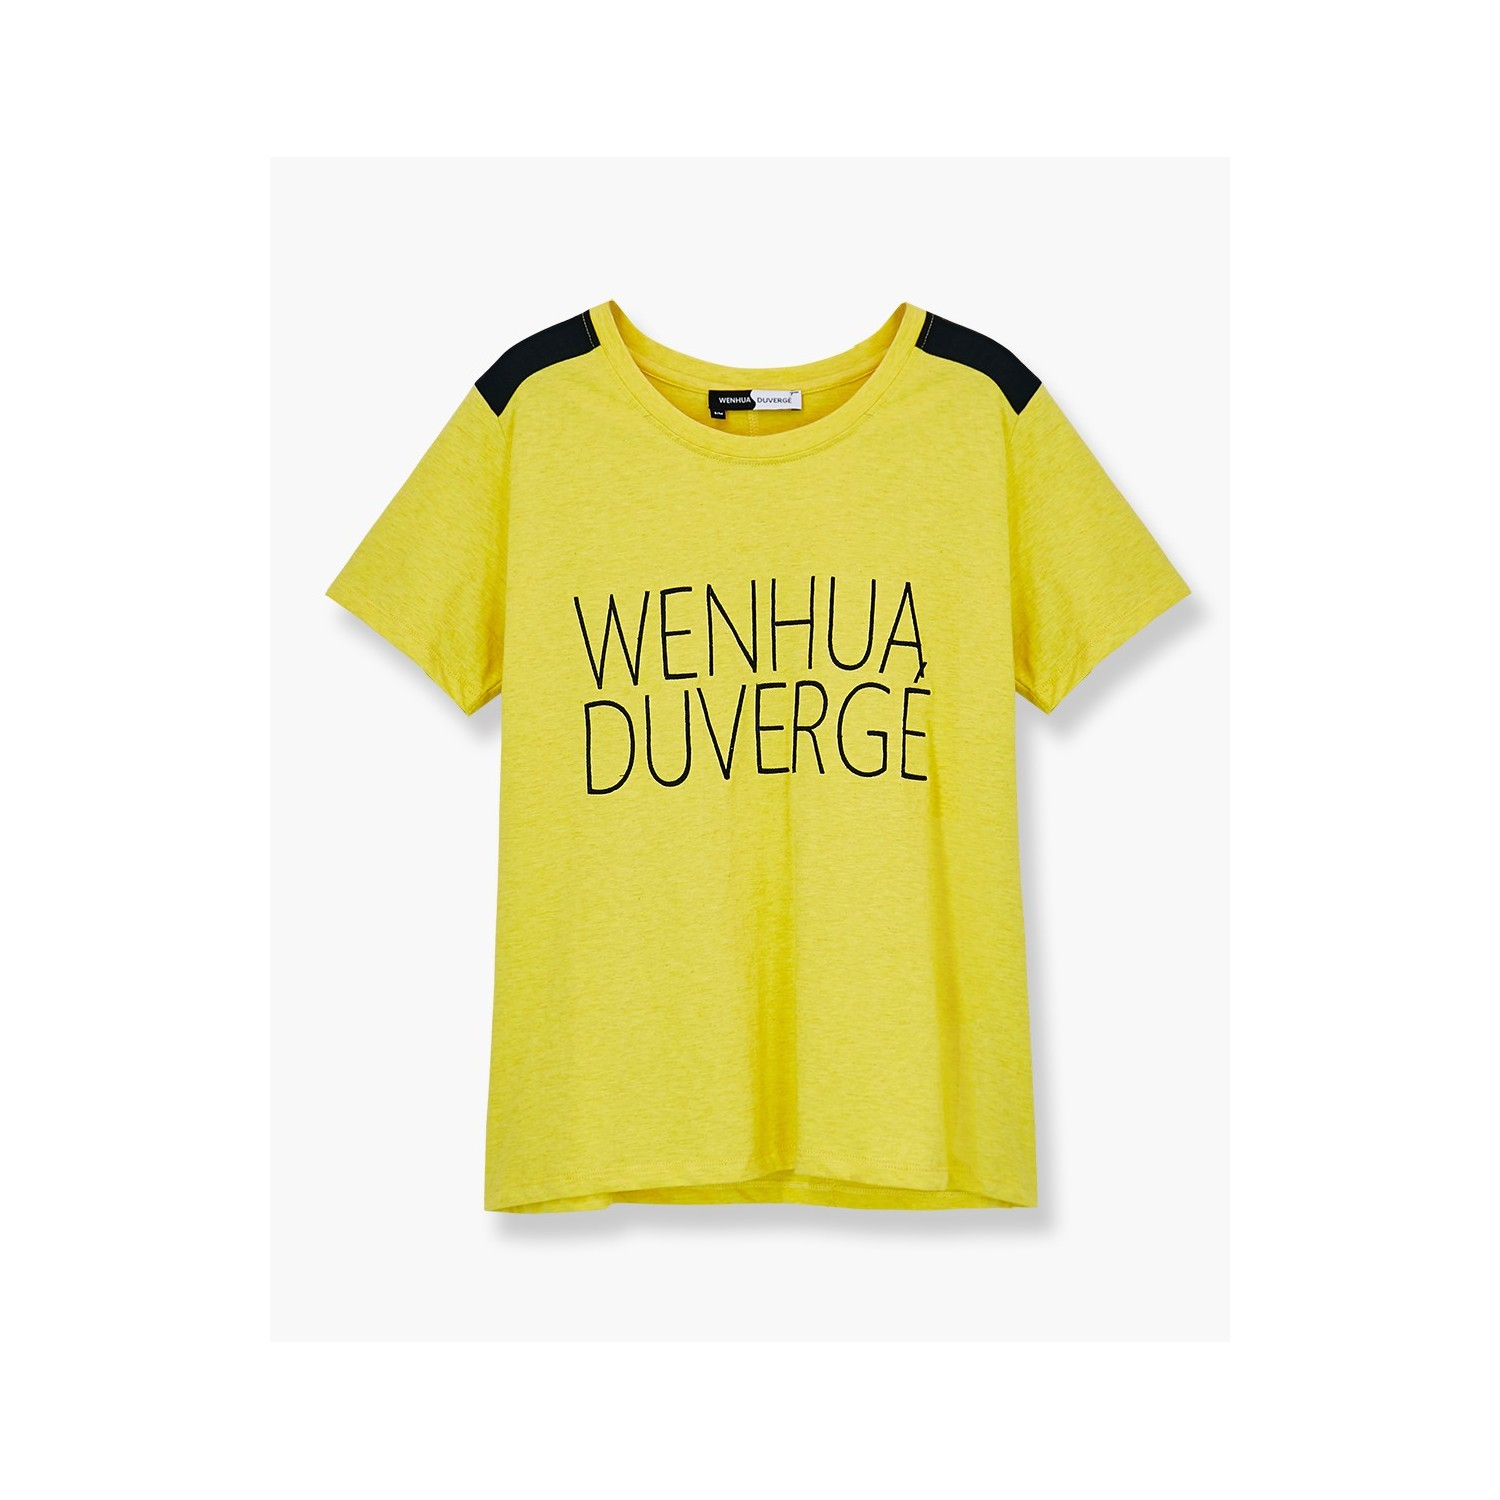 T shirt embroidered logo organic cotton wenhua duverg for Embroidered logos on shirts